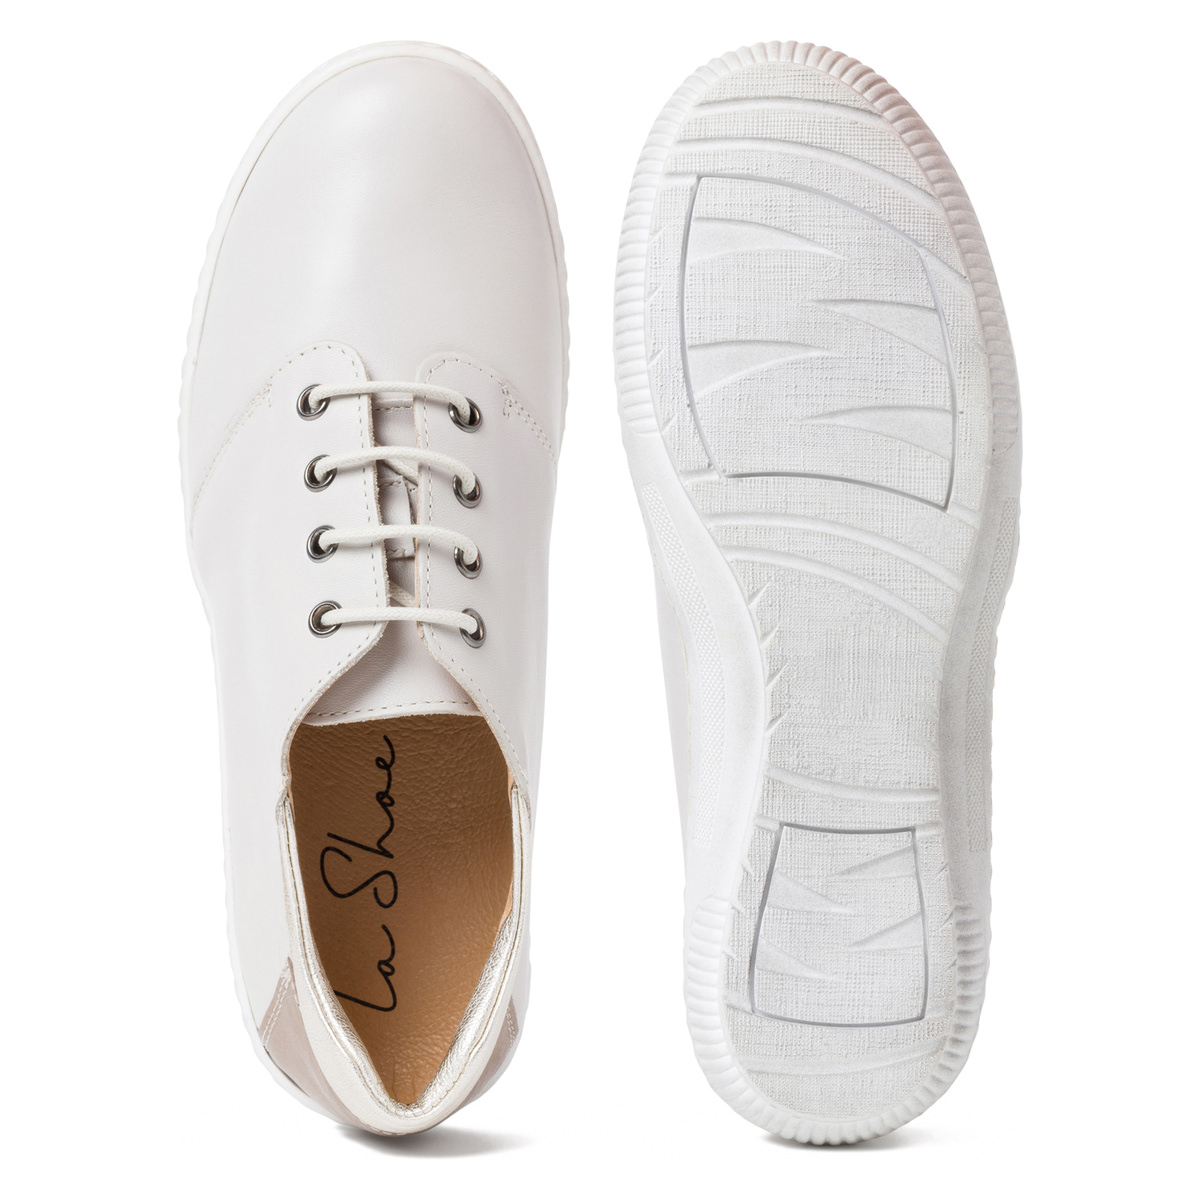 Sneaker Clean-Chic Offwhite